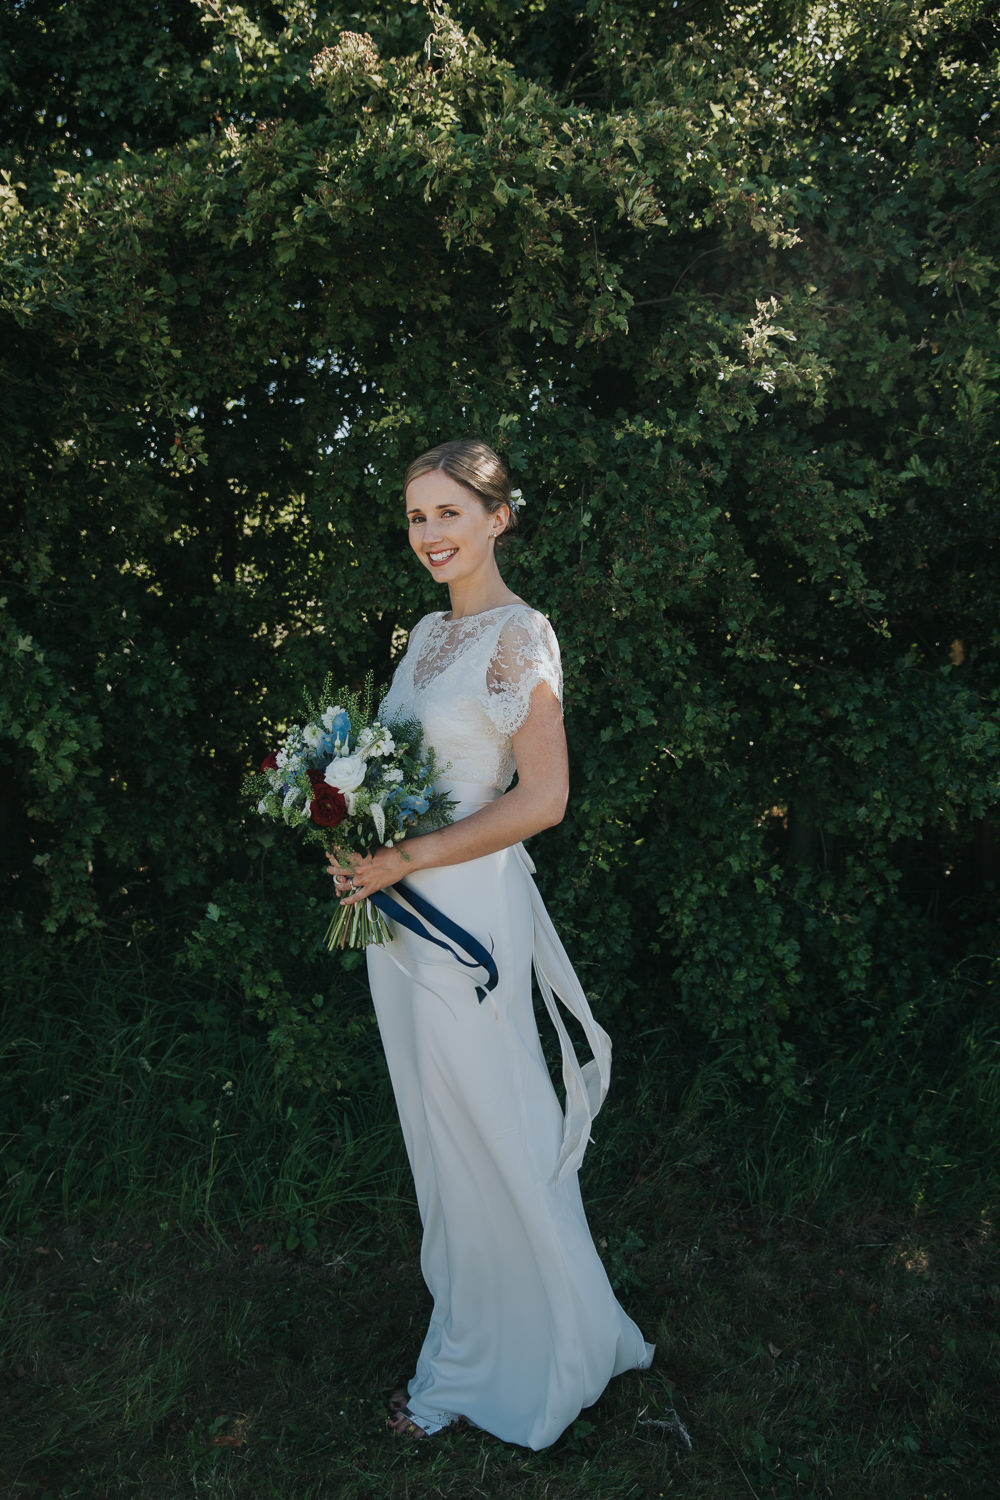 Bride Bridal Fitted Dress Silk Lace Overlay Blue Red Stocks Flowers Bouquet Strawberry Barn Wedding Jen Owens Images